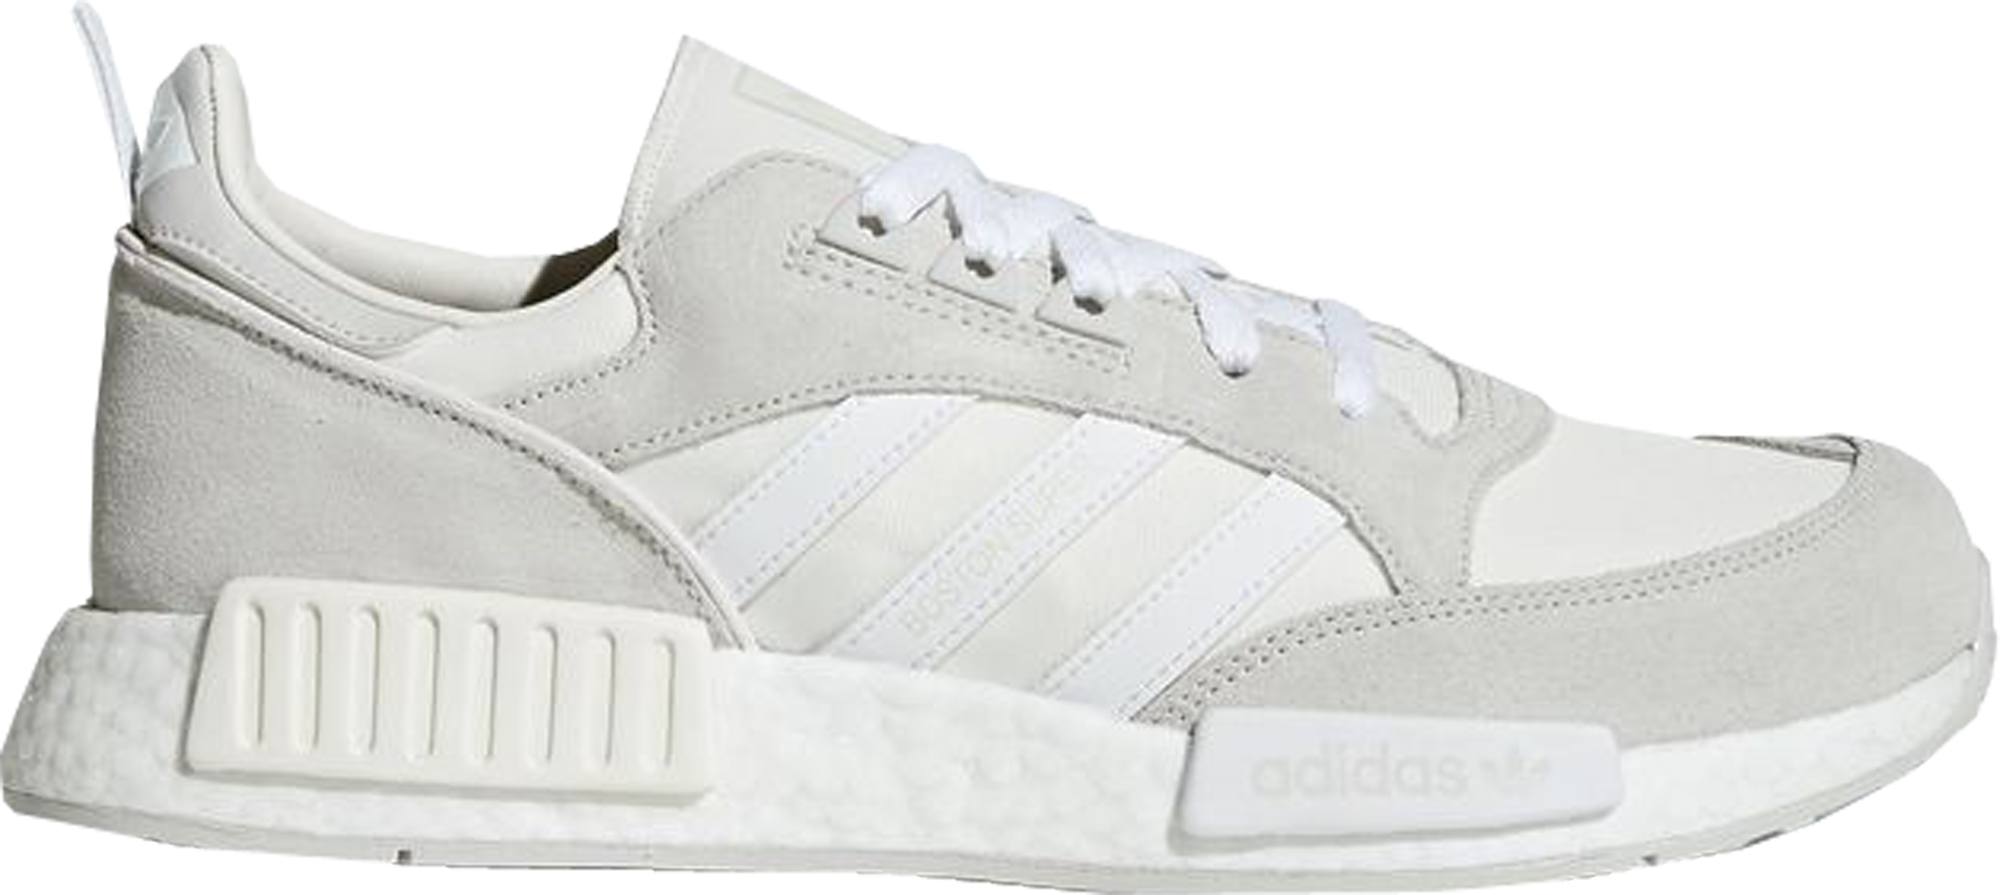 adidas Boston Super x R1 Never Made Pack Triple White